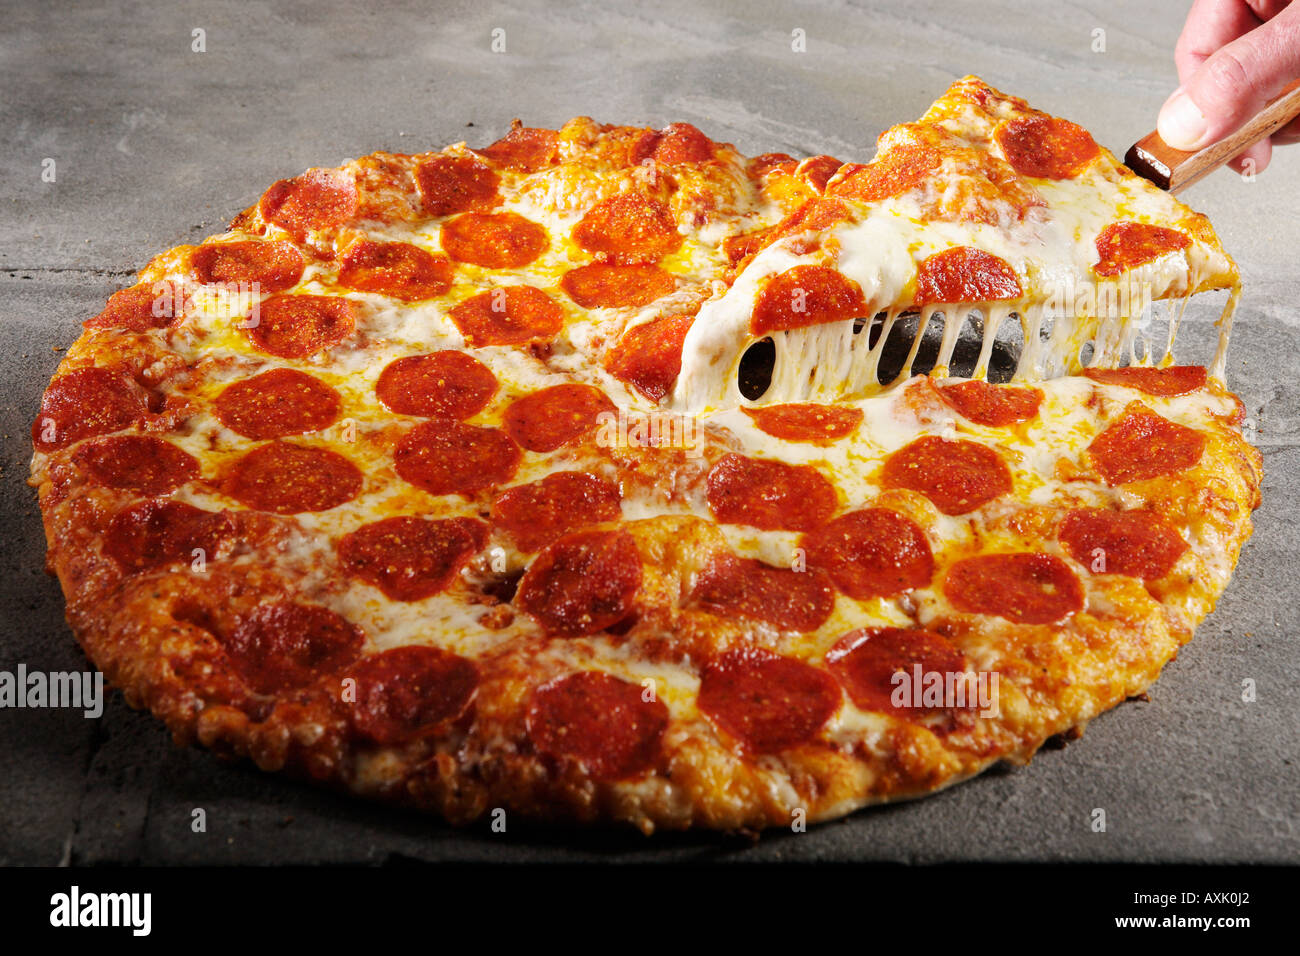 meat pepperoni pizza hand holding slice piece on spatula lifting up warm cheese bread crust on stone table round - Stock Image